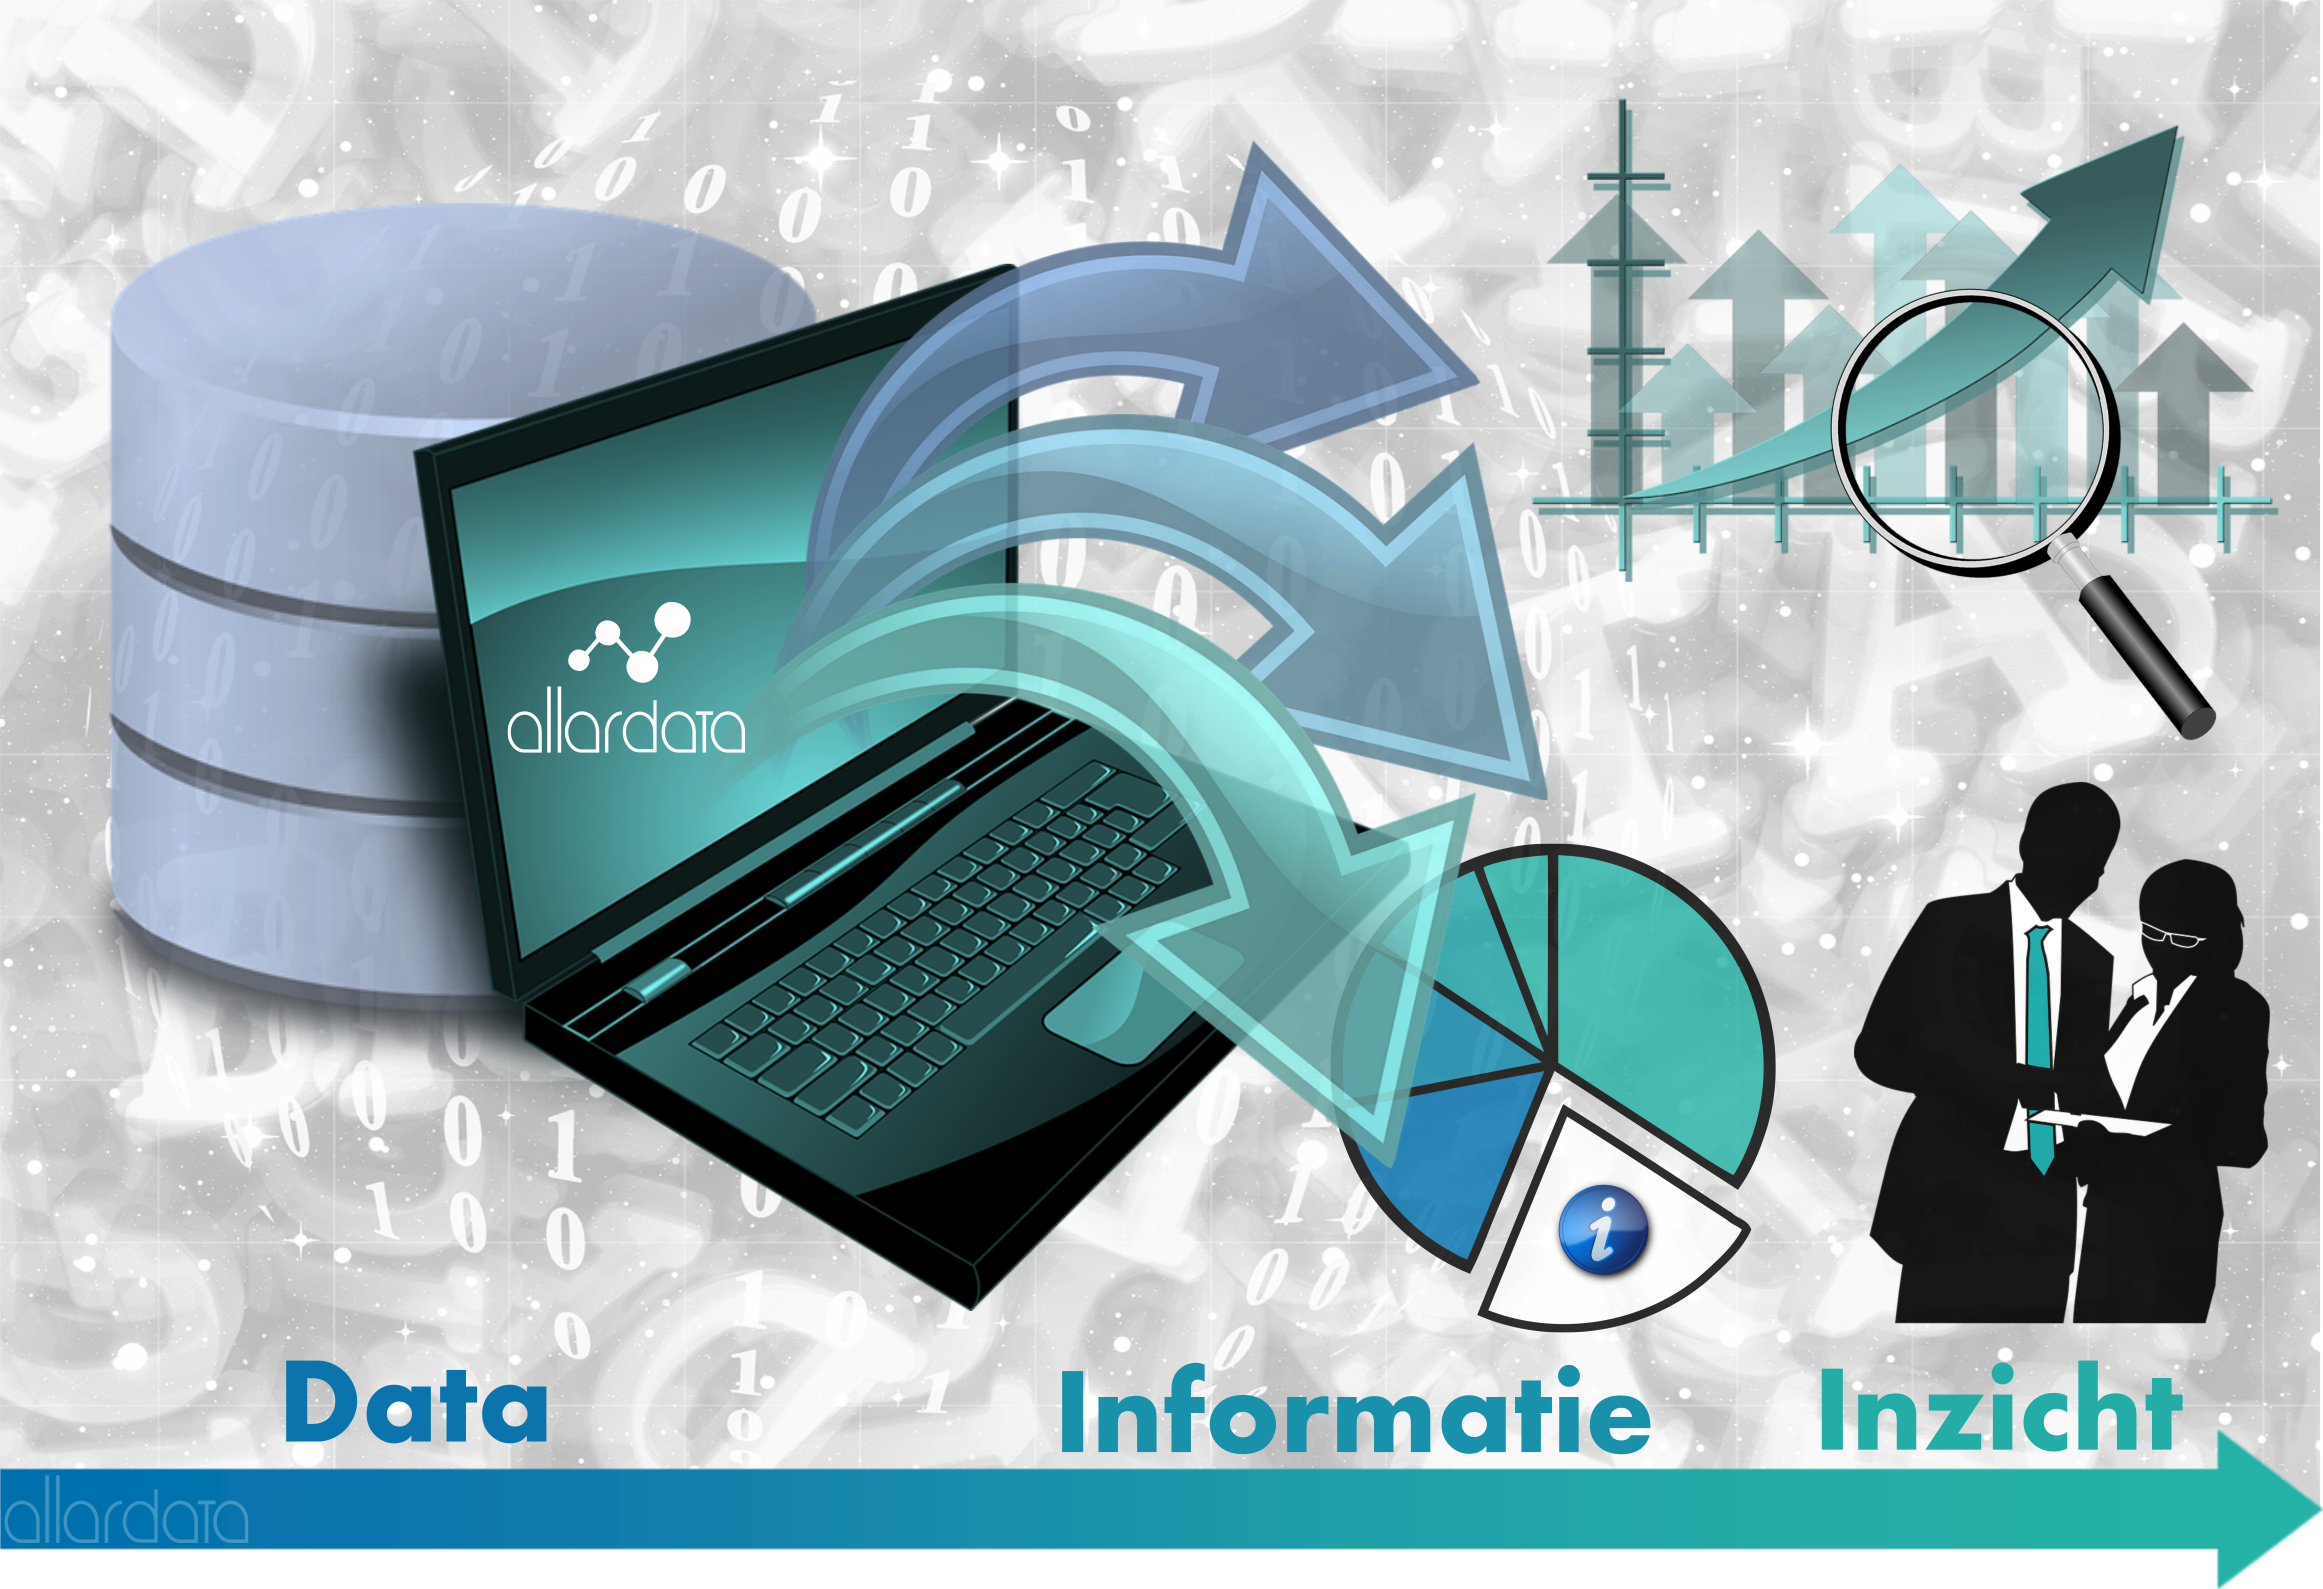 Allardata Business Intelligence